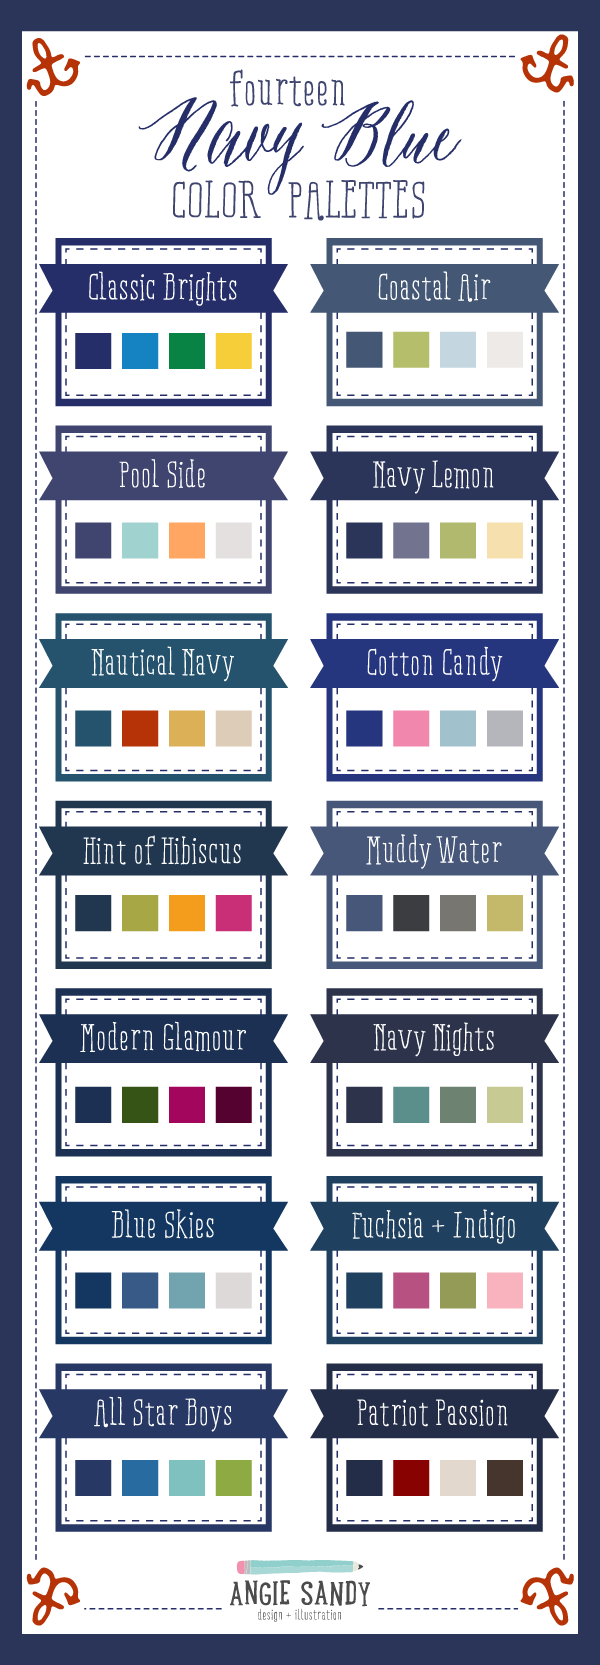 14 Navy Blue Color Palettes